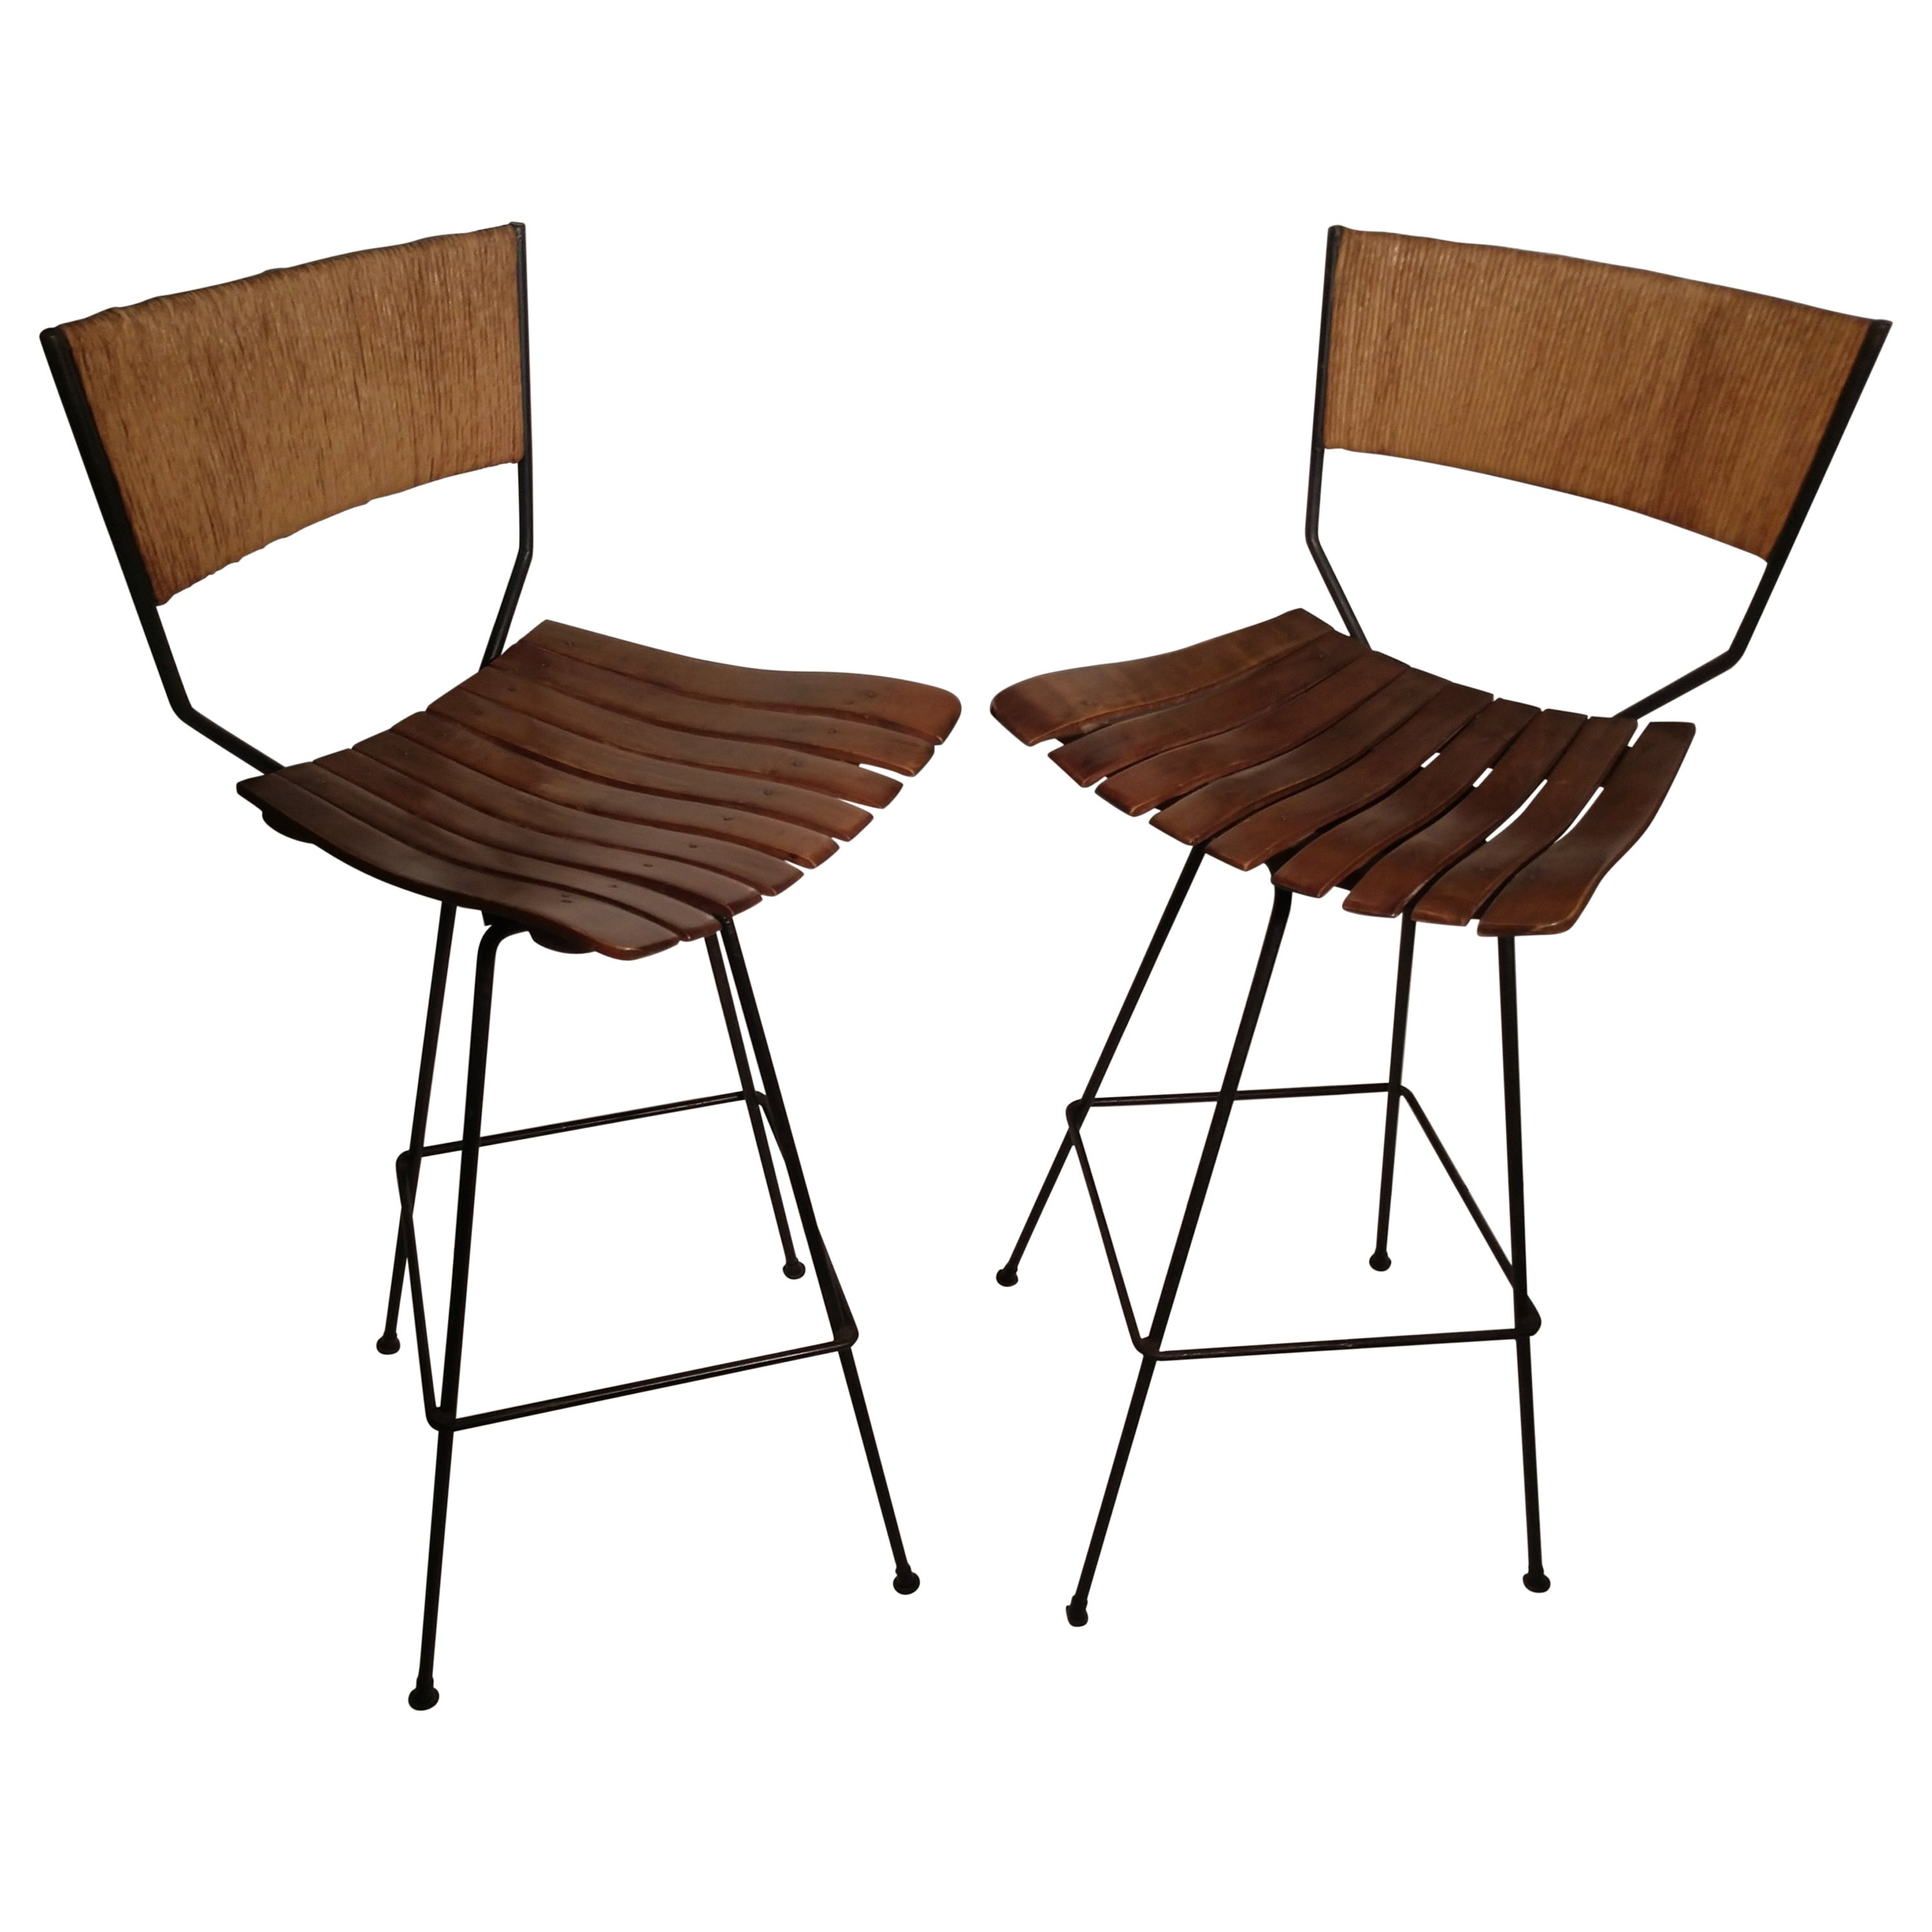 Pair of Mid-Century Modern Bar Stools by Arthur Umanoff 5 Available